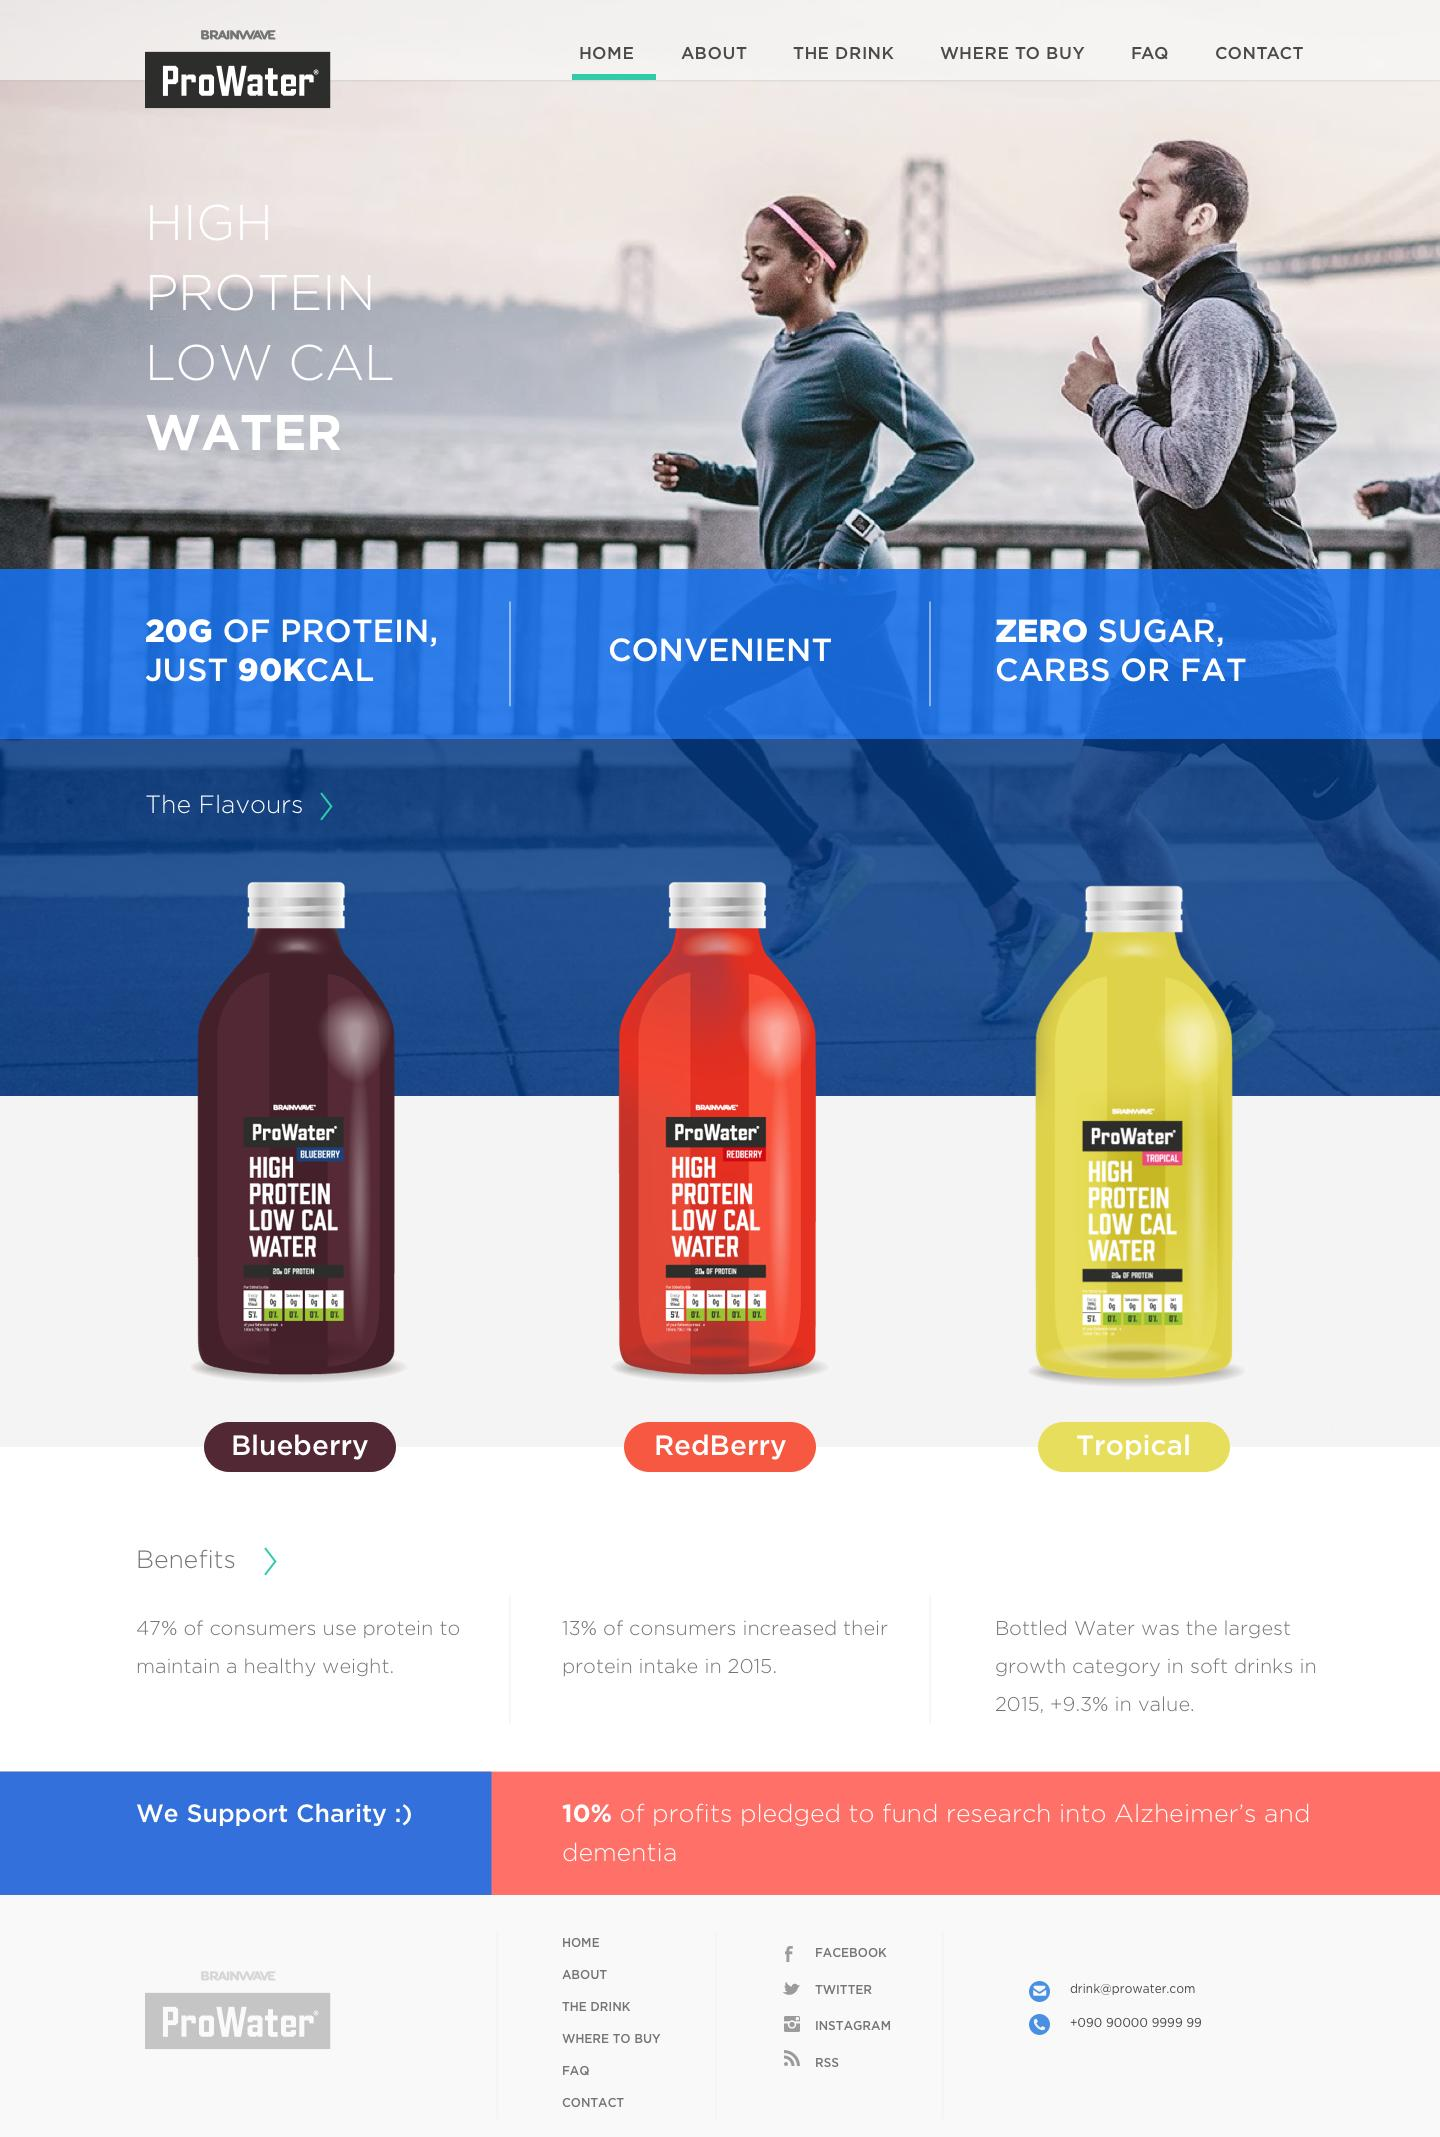 UI/UX design and development for websites   by tinjothomasc - 110101